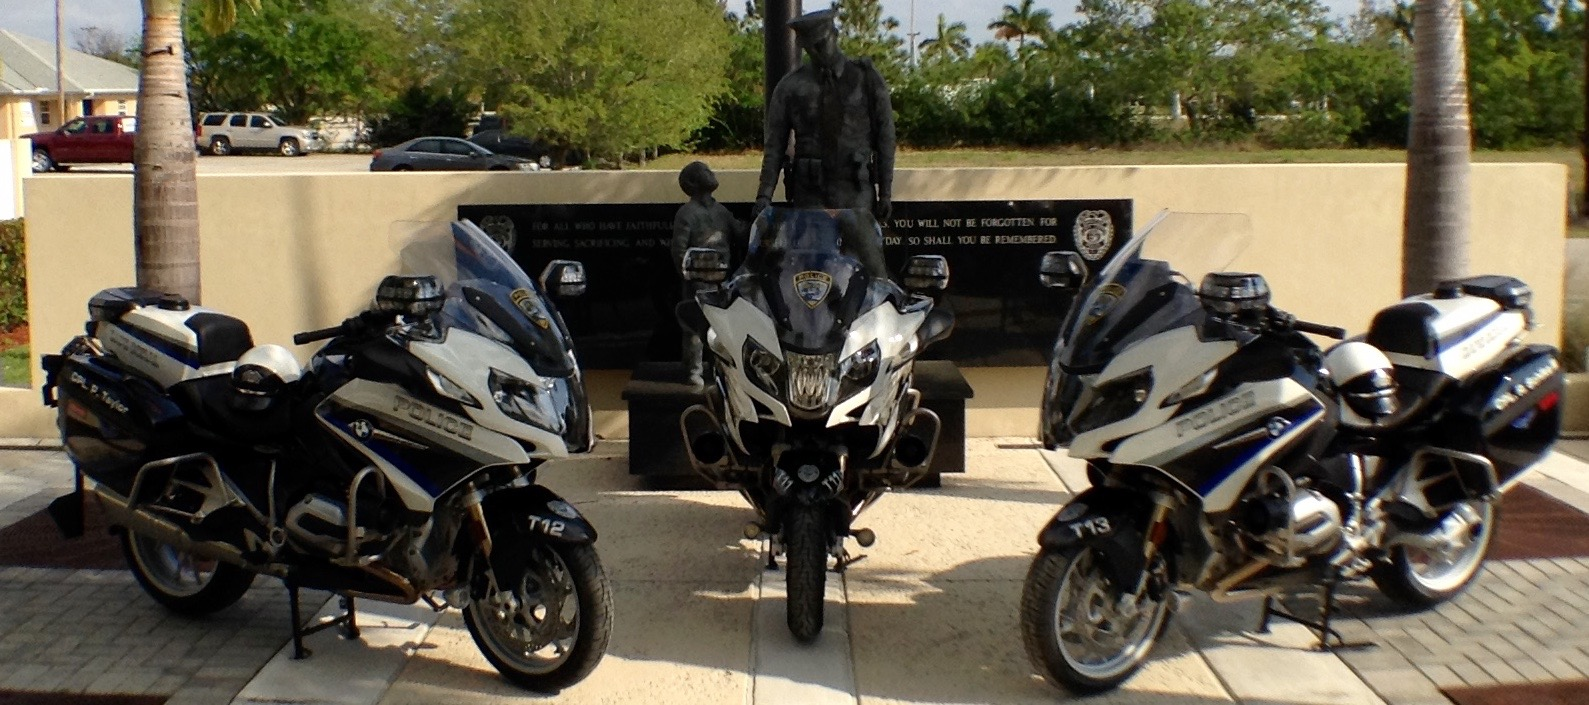 hight resolution of cape coral police department unveils new motorcycles for traffic unit cape coral police department